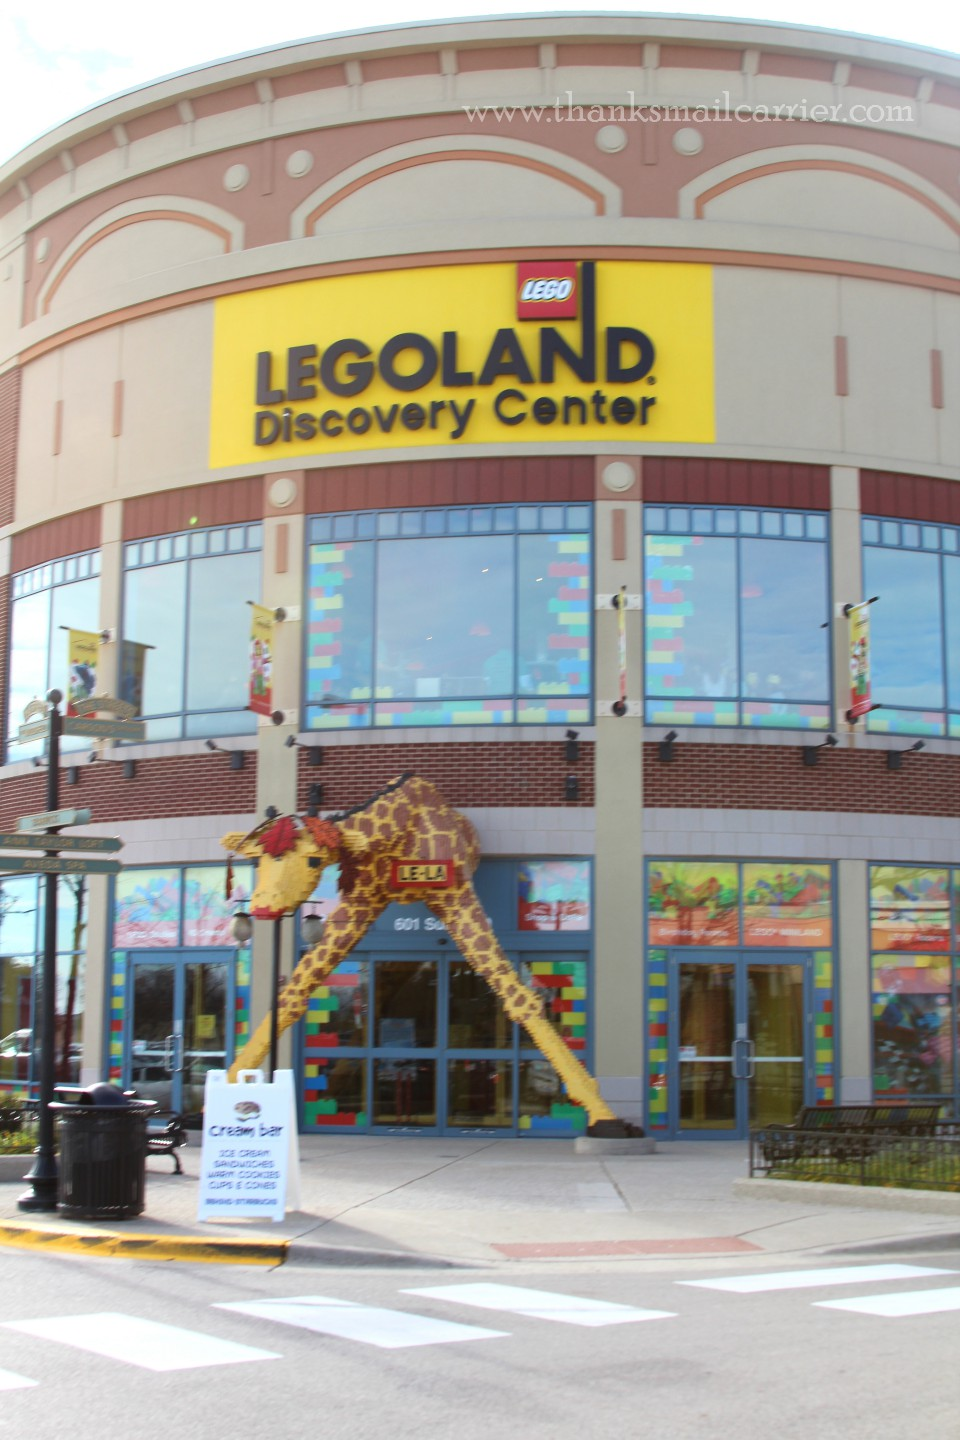 Things to See and Do Near Legoland Discovery Center. After you've visited Legoland Discovery Center, you can explore the sights within a couple miles of the area. Local parks like Ned Brown Forest Preserve, Heritage Park, and North School Park are peaceful spots to stop and take in some fresh air.